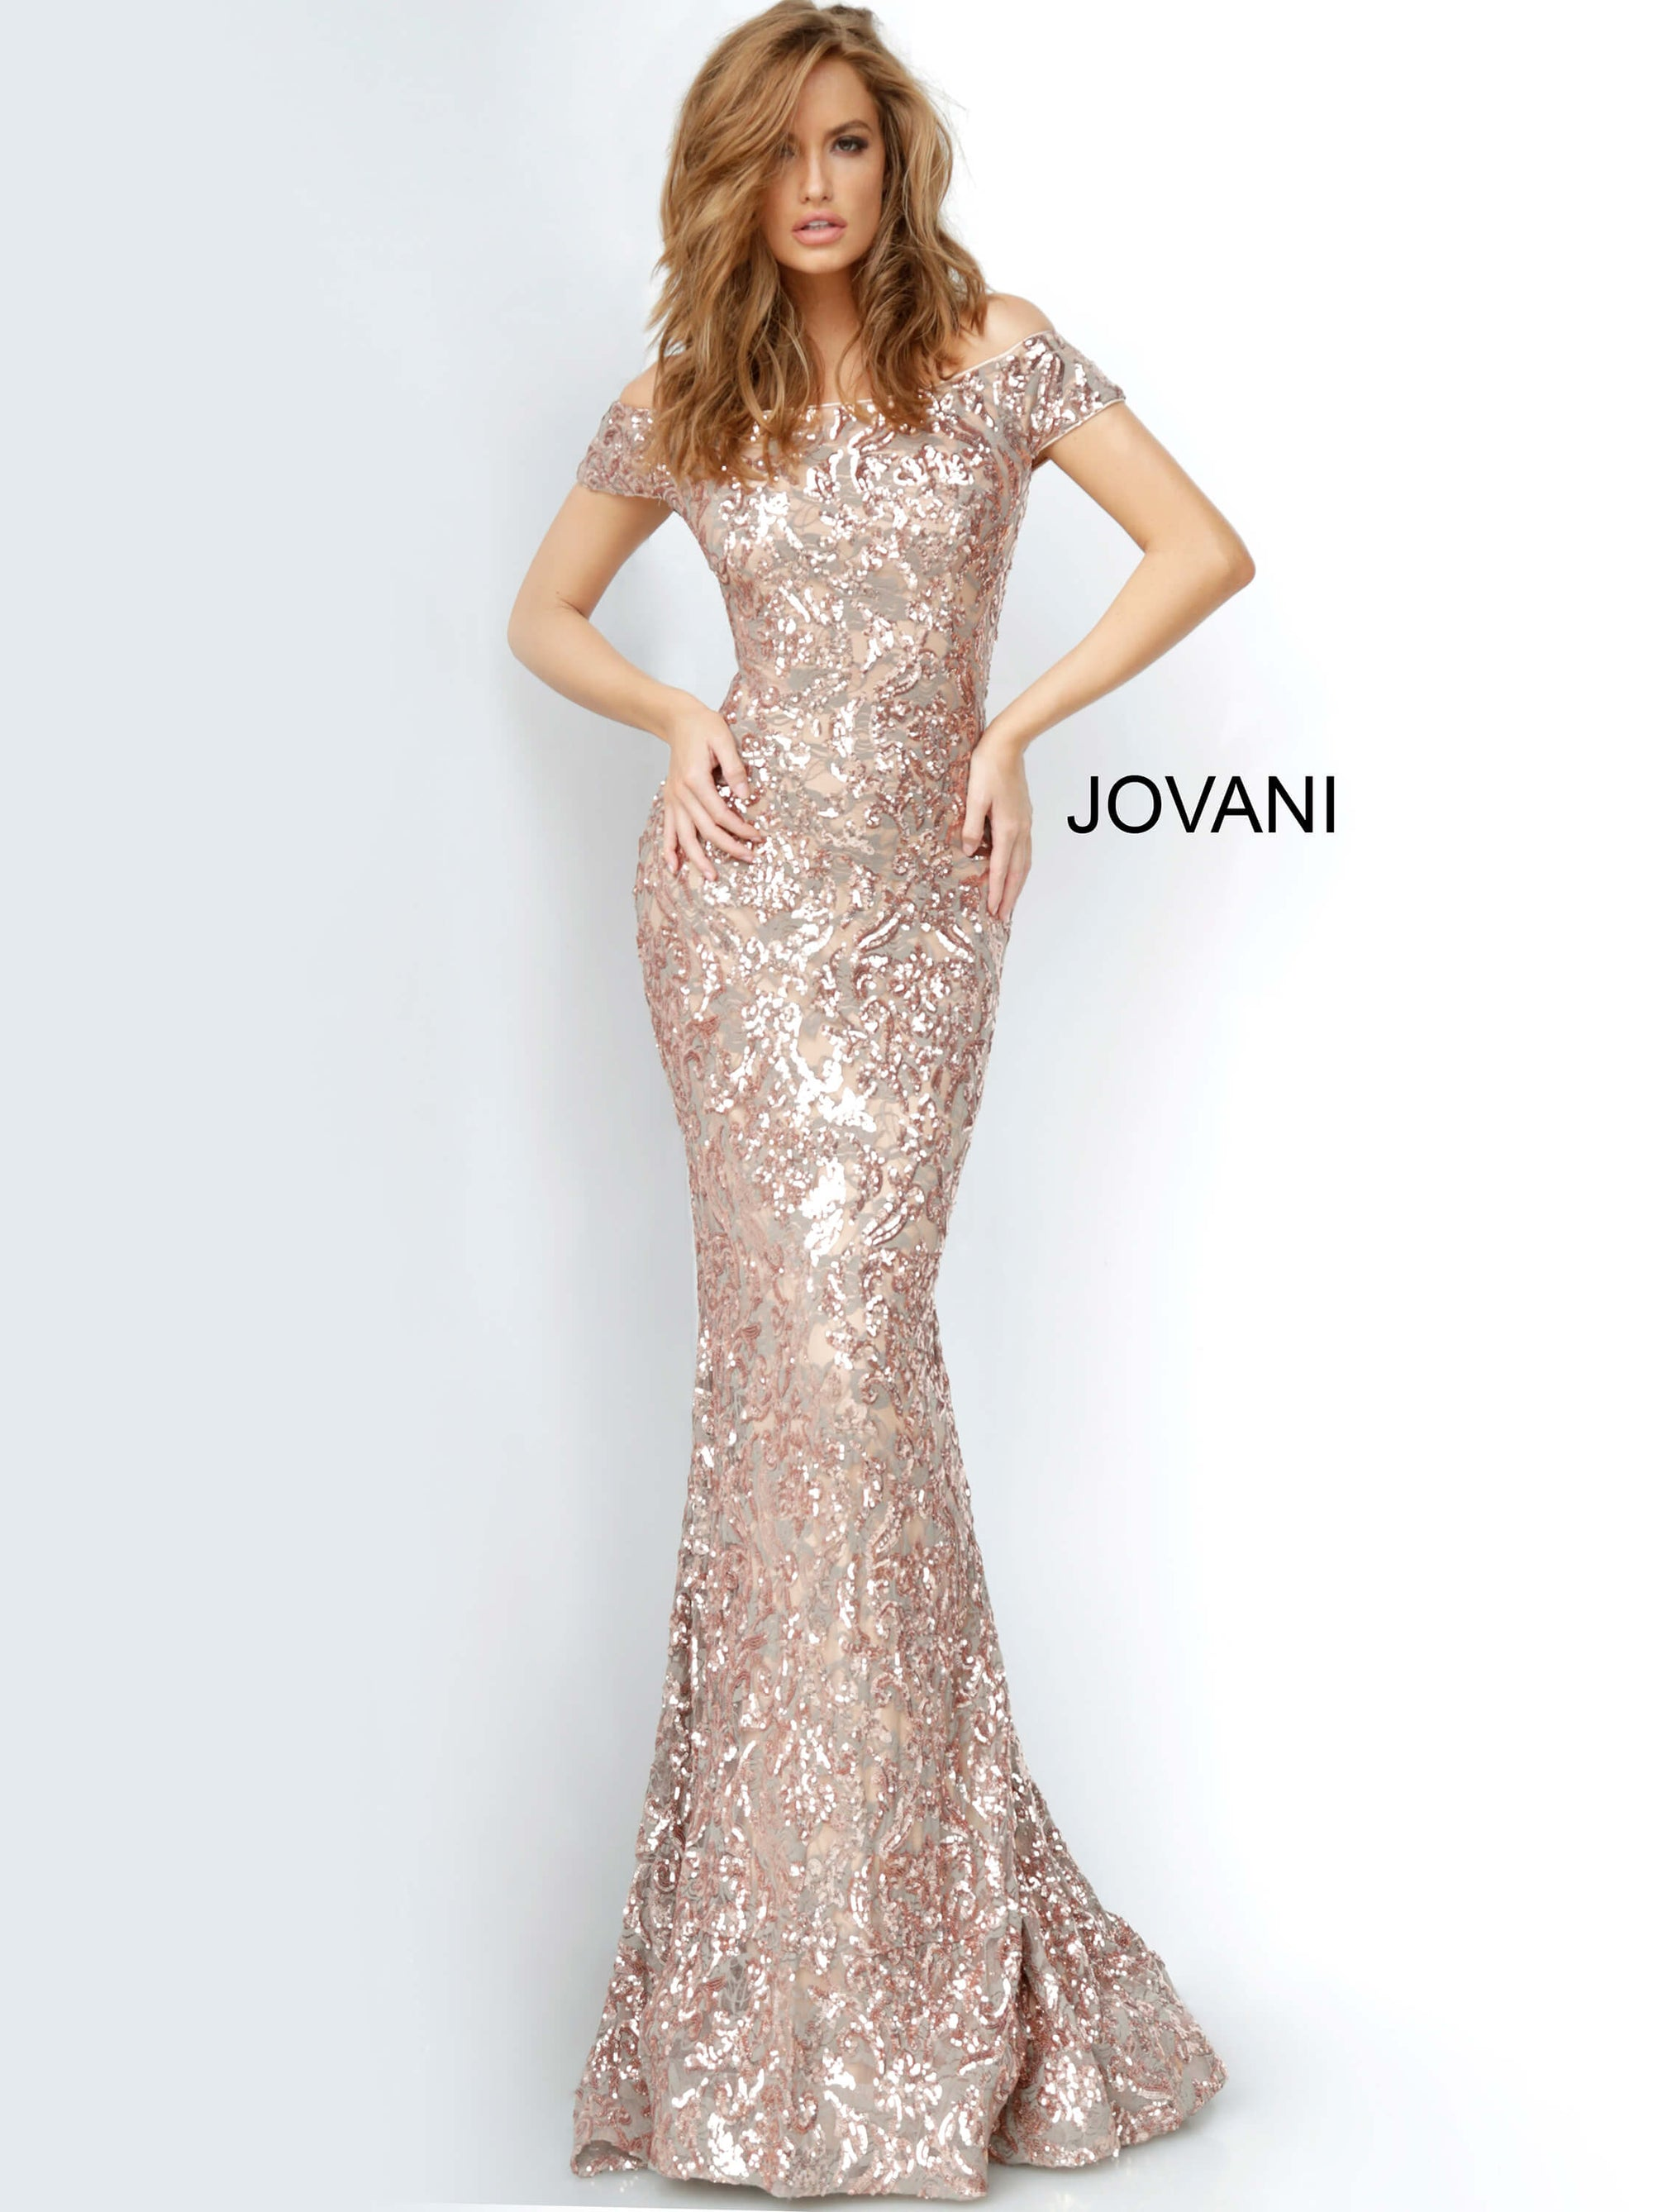 Jovani 1122 off the shoulder mermaid long dress